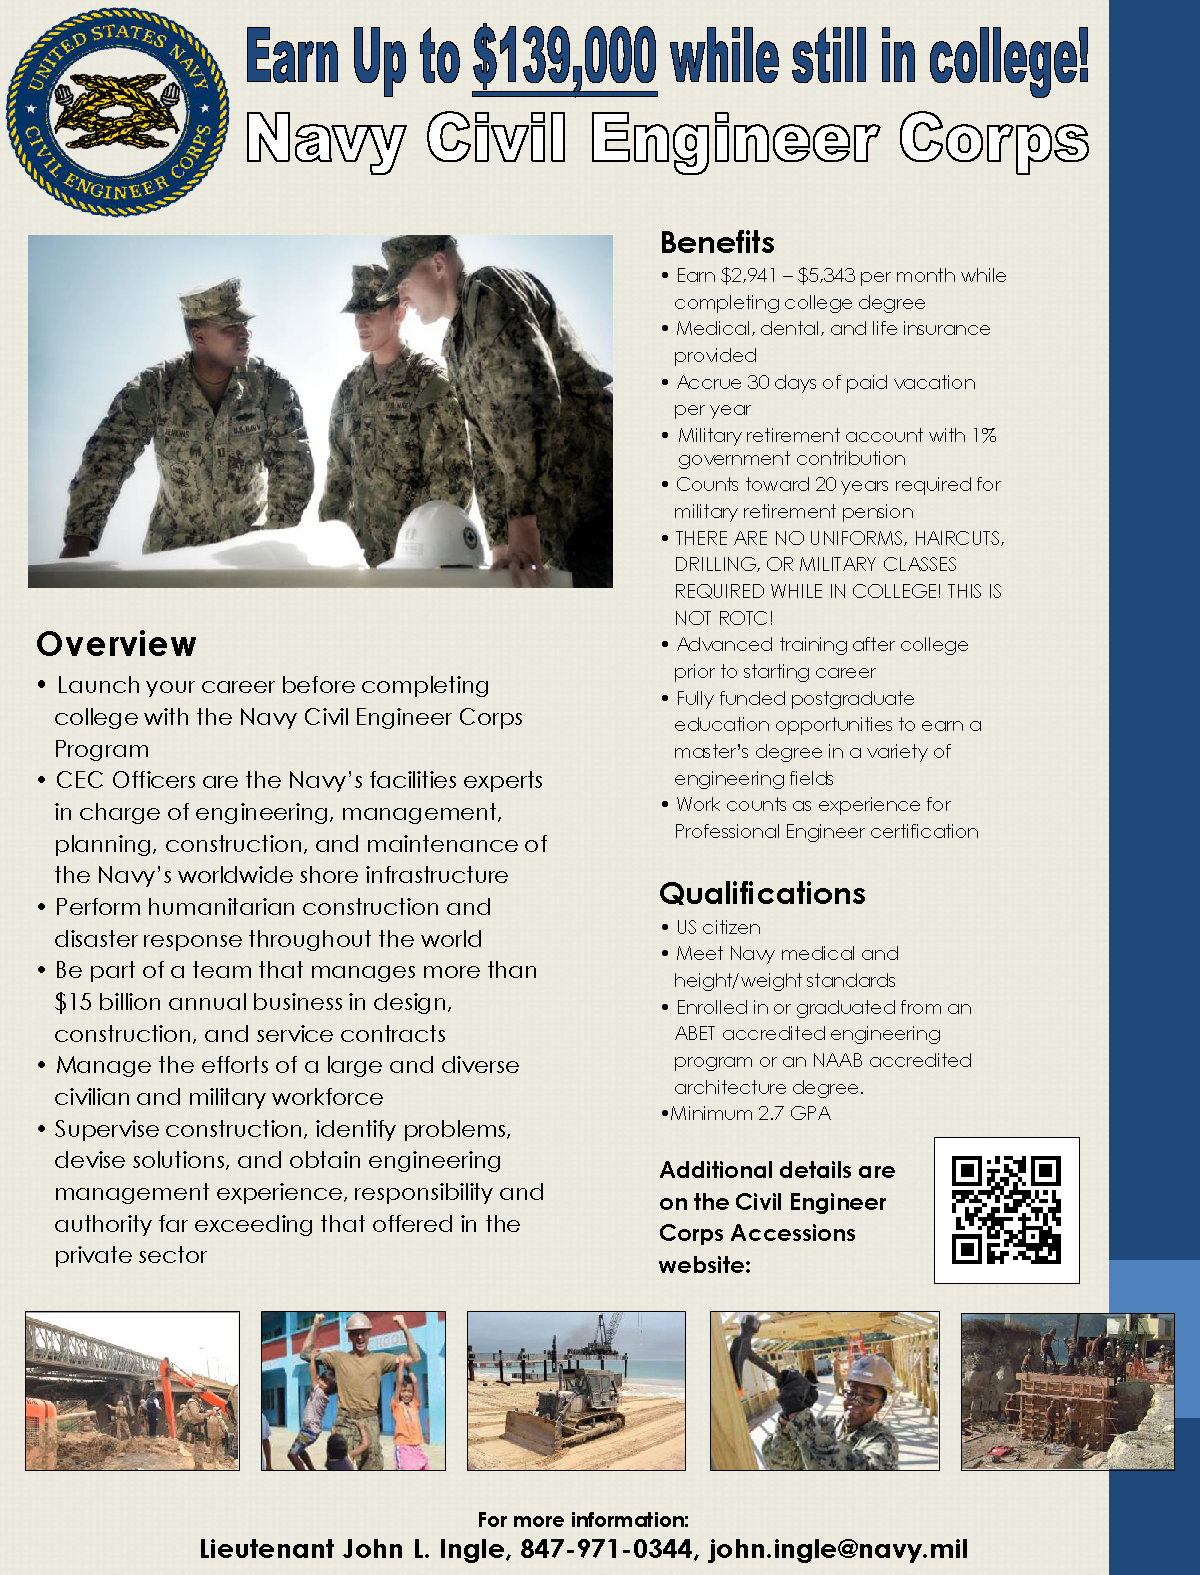 Navy Civil Engineer Corps | Purdue IE Undergrad News and Notes